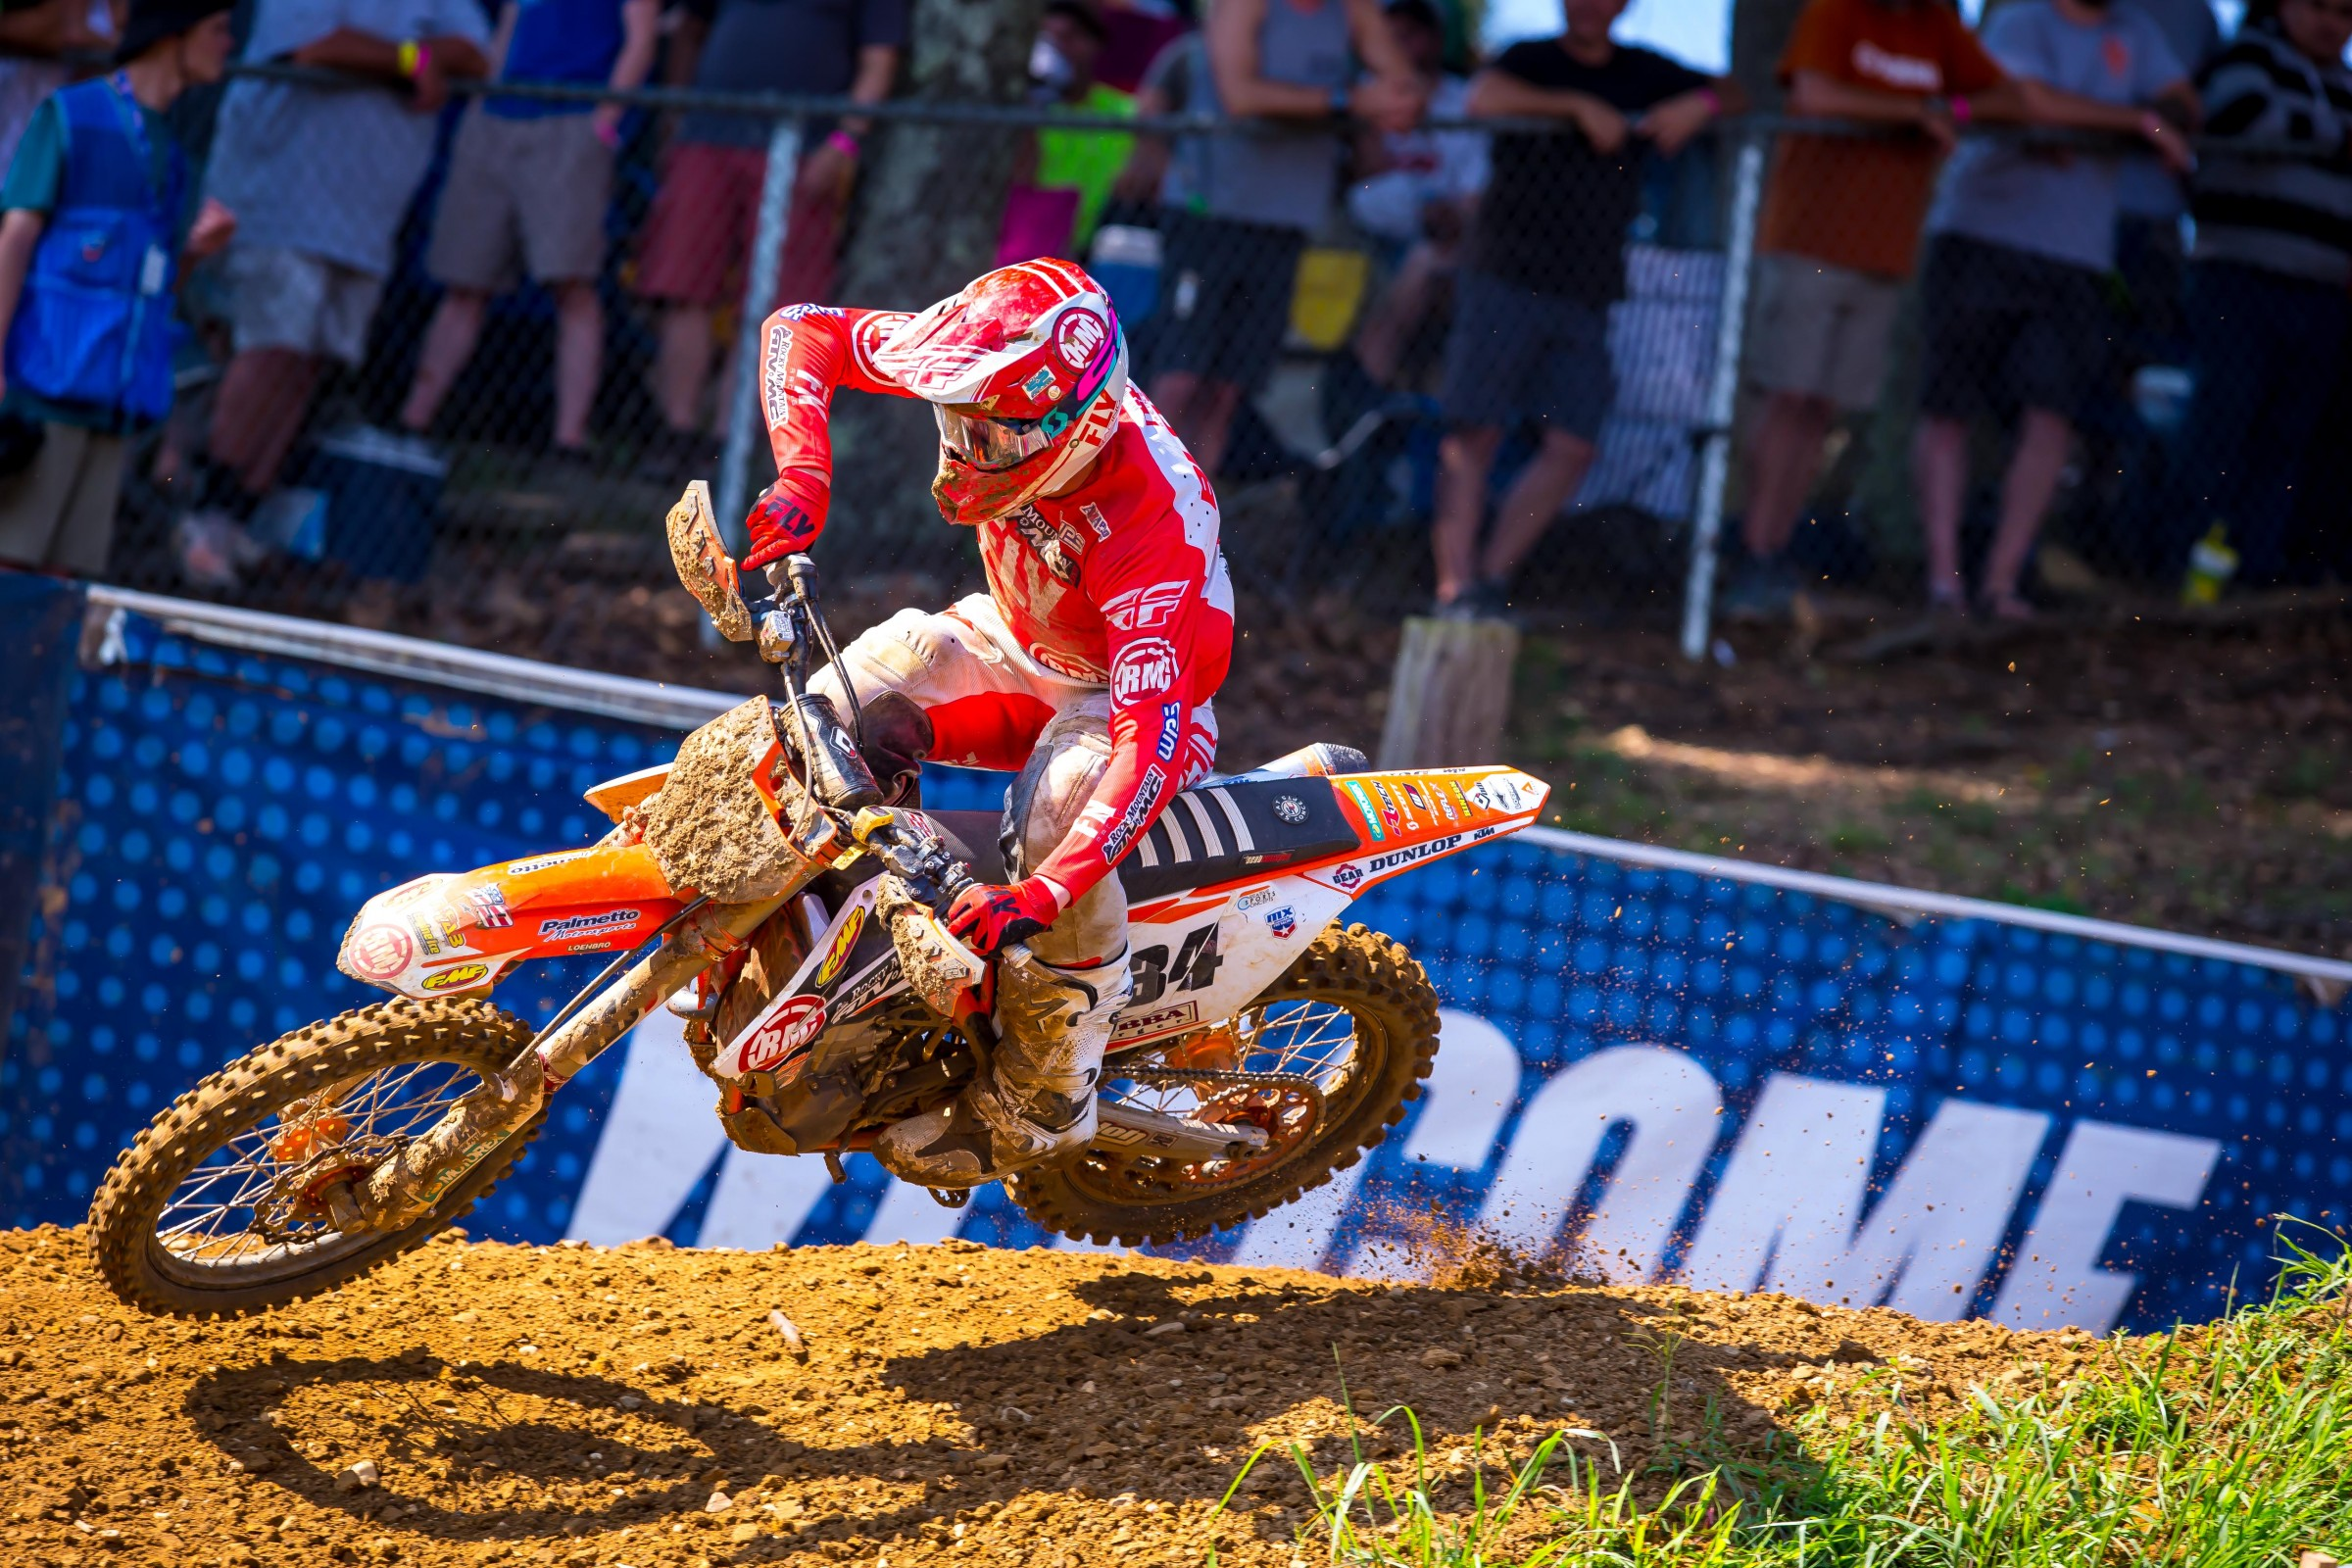 Bloss has gone 14-24-17-11-15-8-11-11 since returning at Millville.